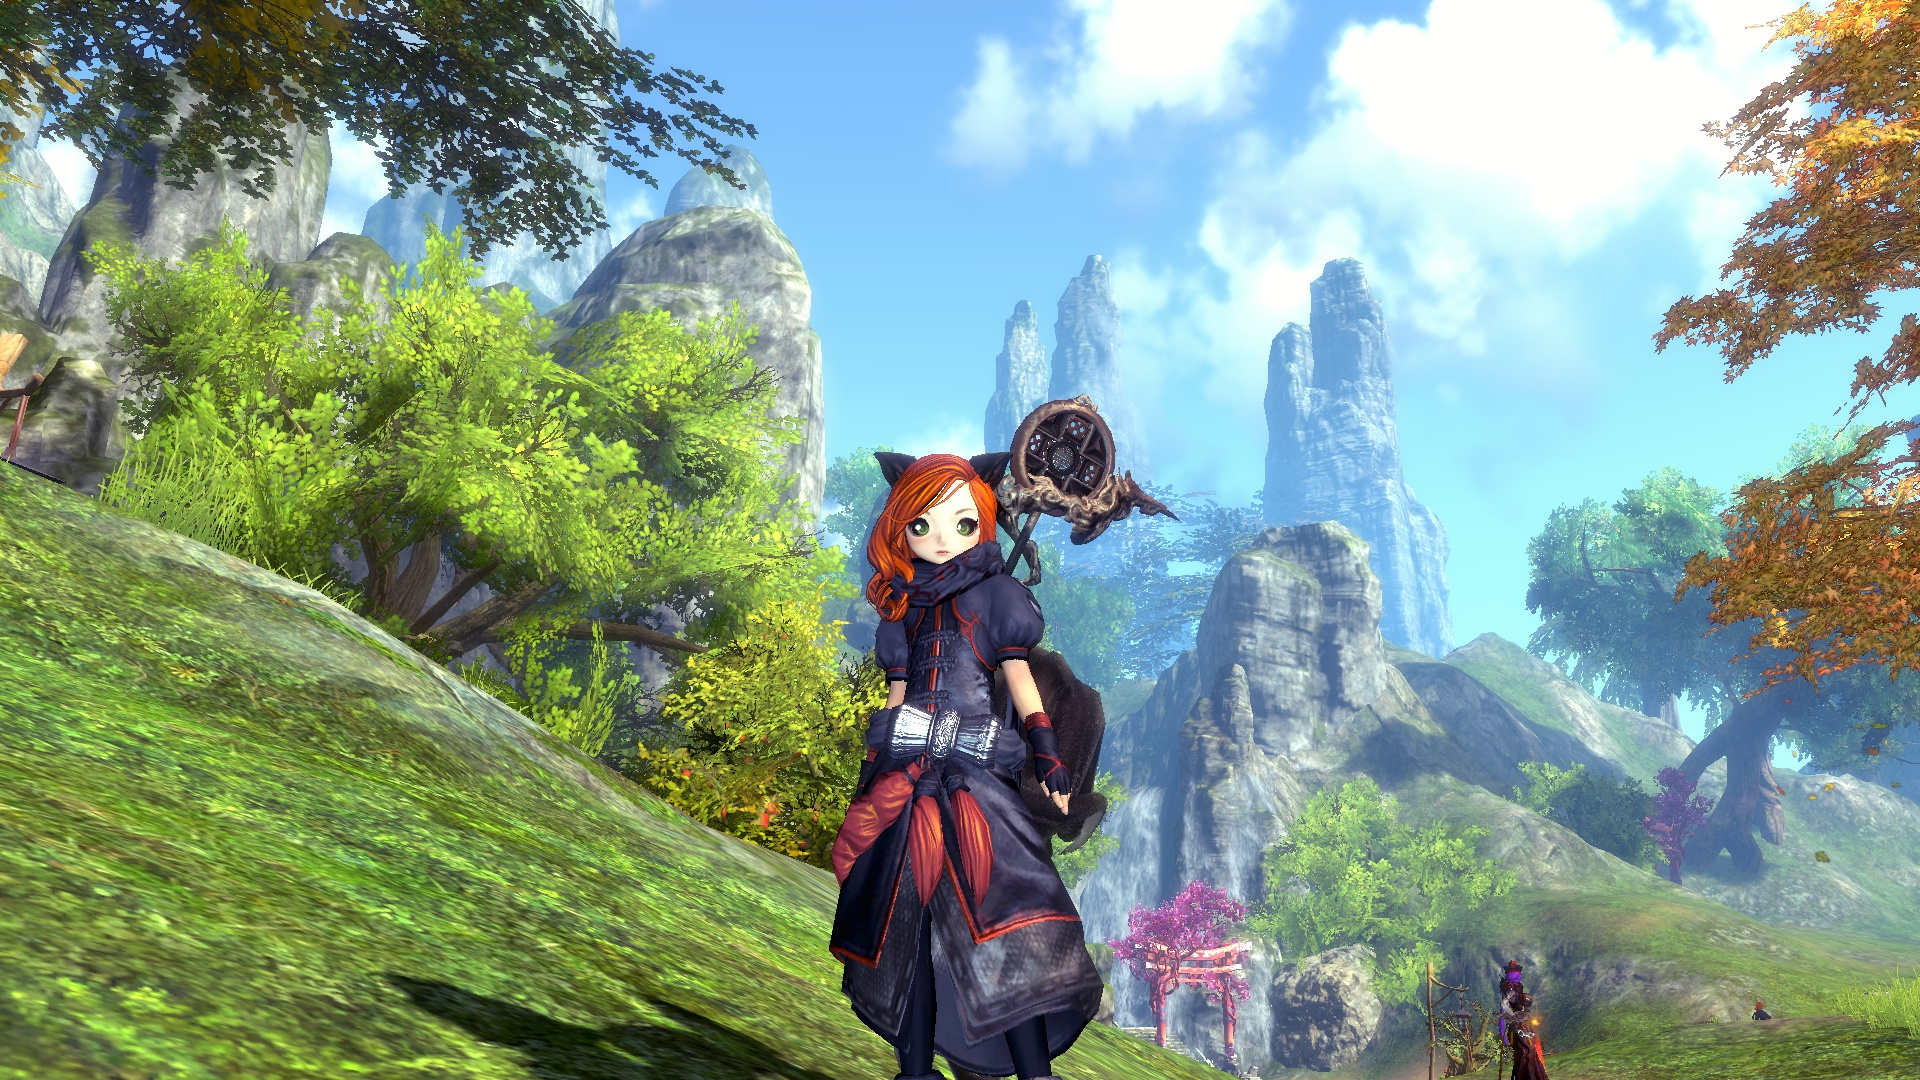 Blade & Soul: A fun action MMO with several minor annoyances